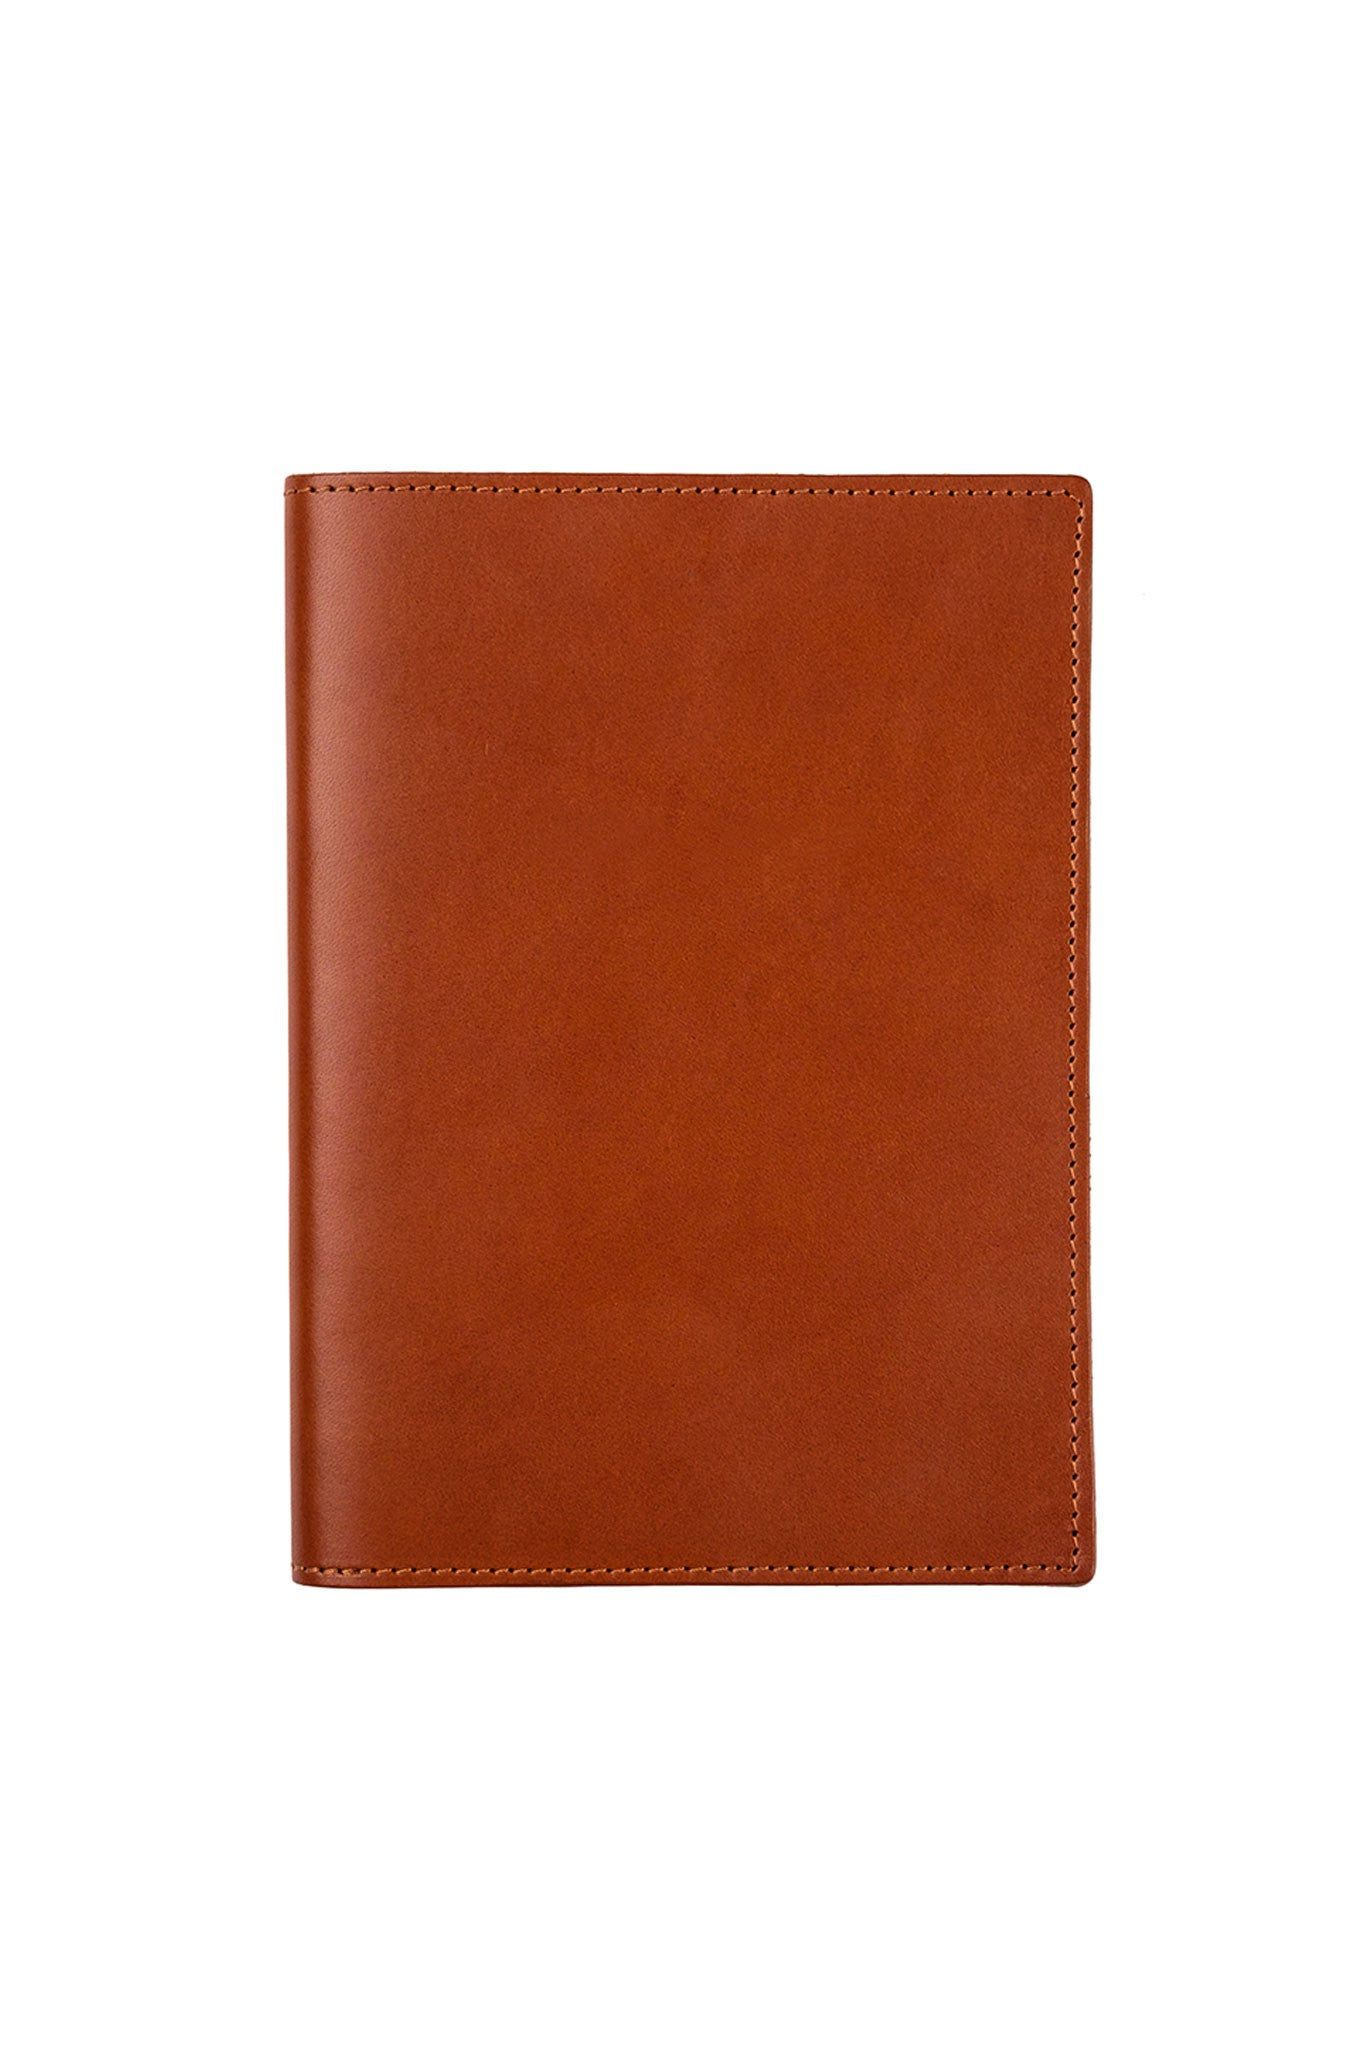 FOTO | Cognac Leather Journal for New Moms - refillable genuine leather journal cover can be personalized with gold foil initials, a monogram or personal graphic making it the perfect personalized gift.